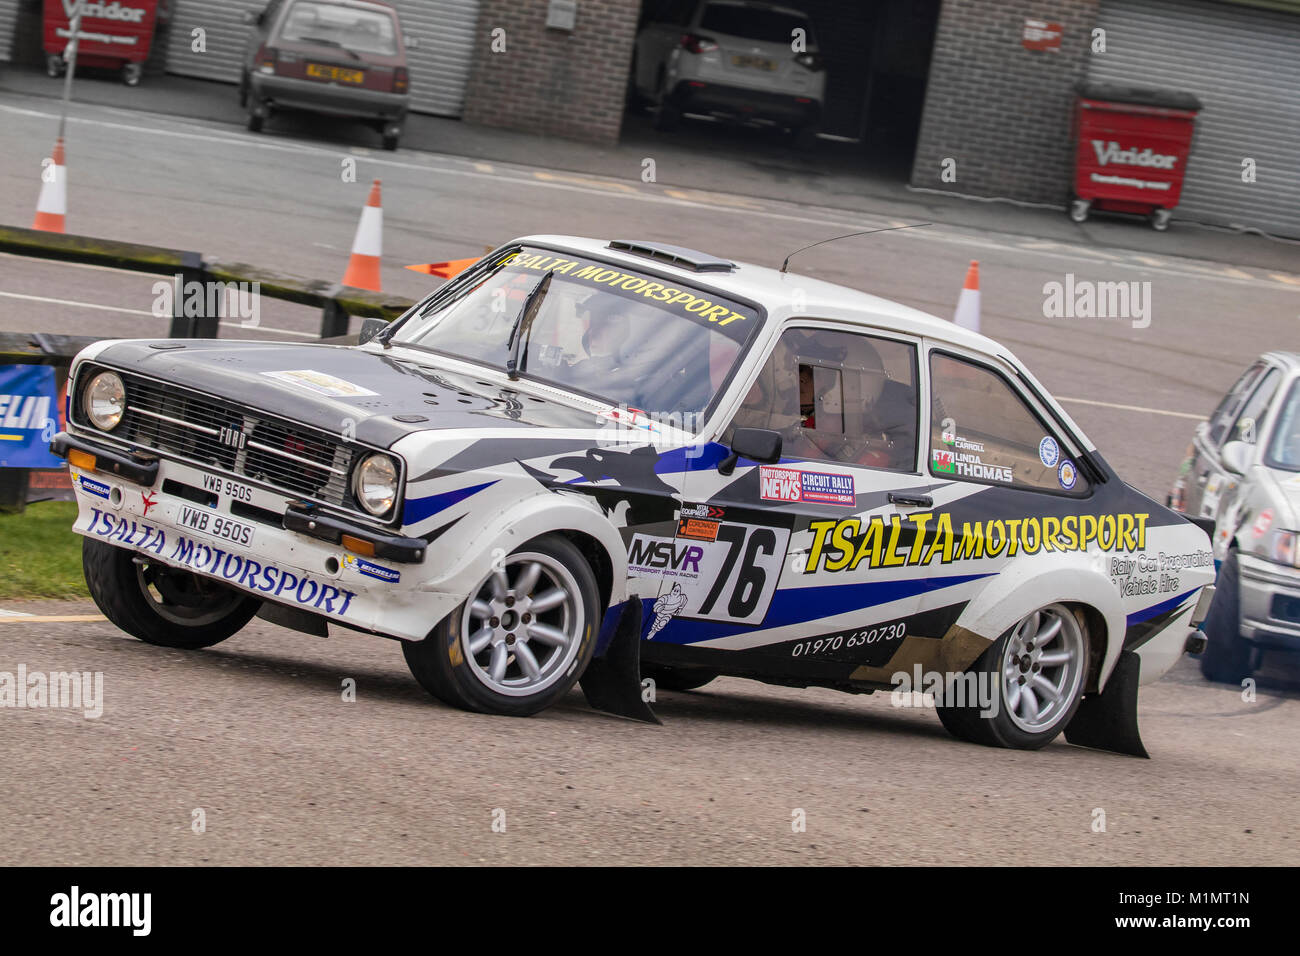 Ford Escort MkII with driver John Carroll and co-driver Linda Thomas at the Motorsport News Circuit Rally Championship, - Stock Image